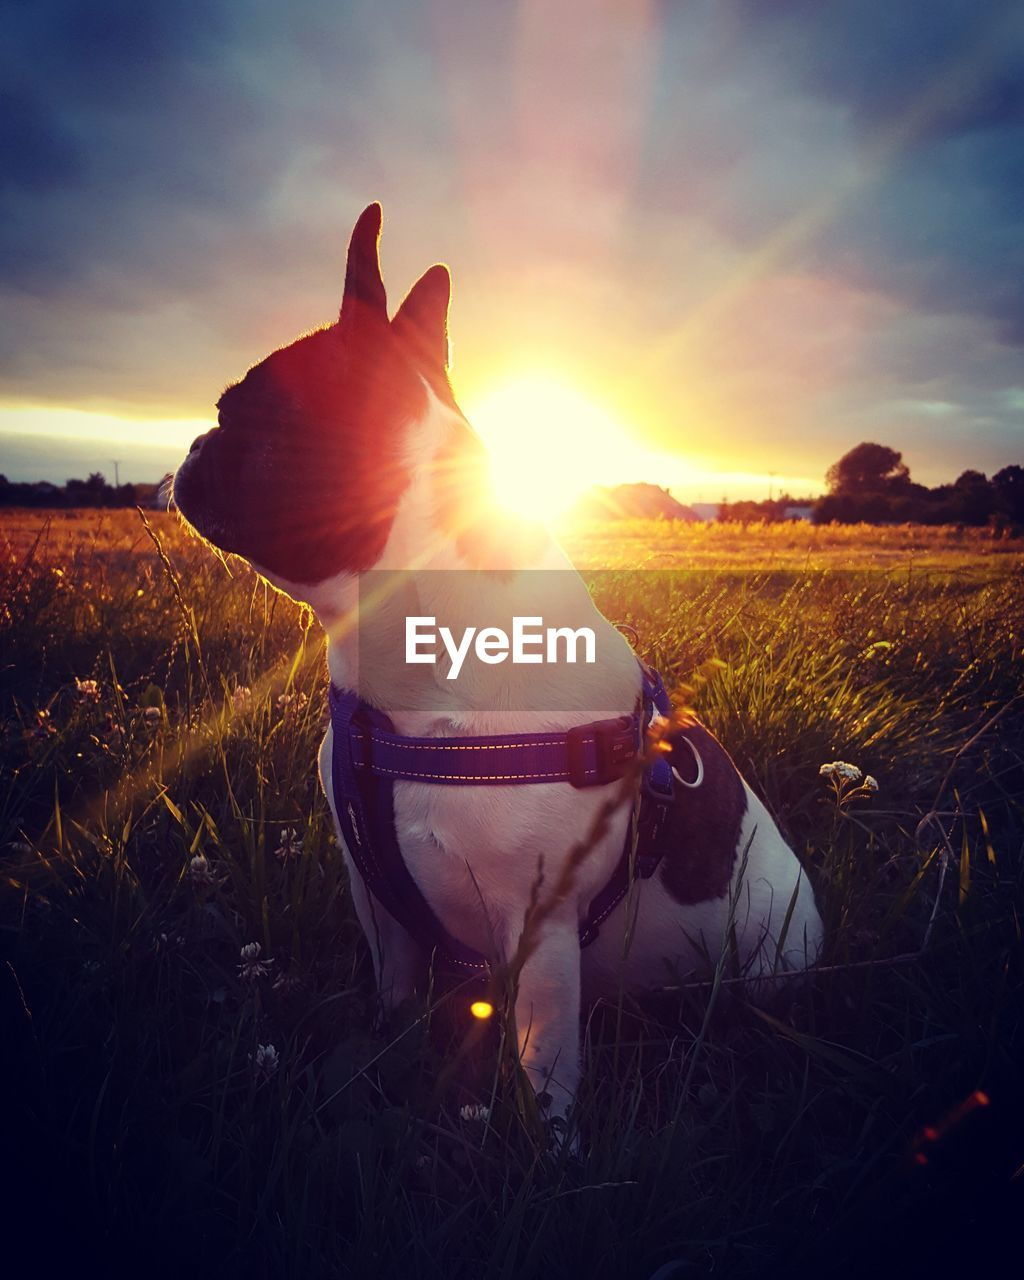 pets, field, domestic animals, sky, domestic, one animal, land, mammal, animal themes, sunset, animal, cloud - sky, grass, canine, dog, lens flare, vertebrate, nature, plant, sunlight, sun, hand, brightly lit